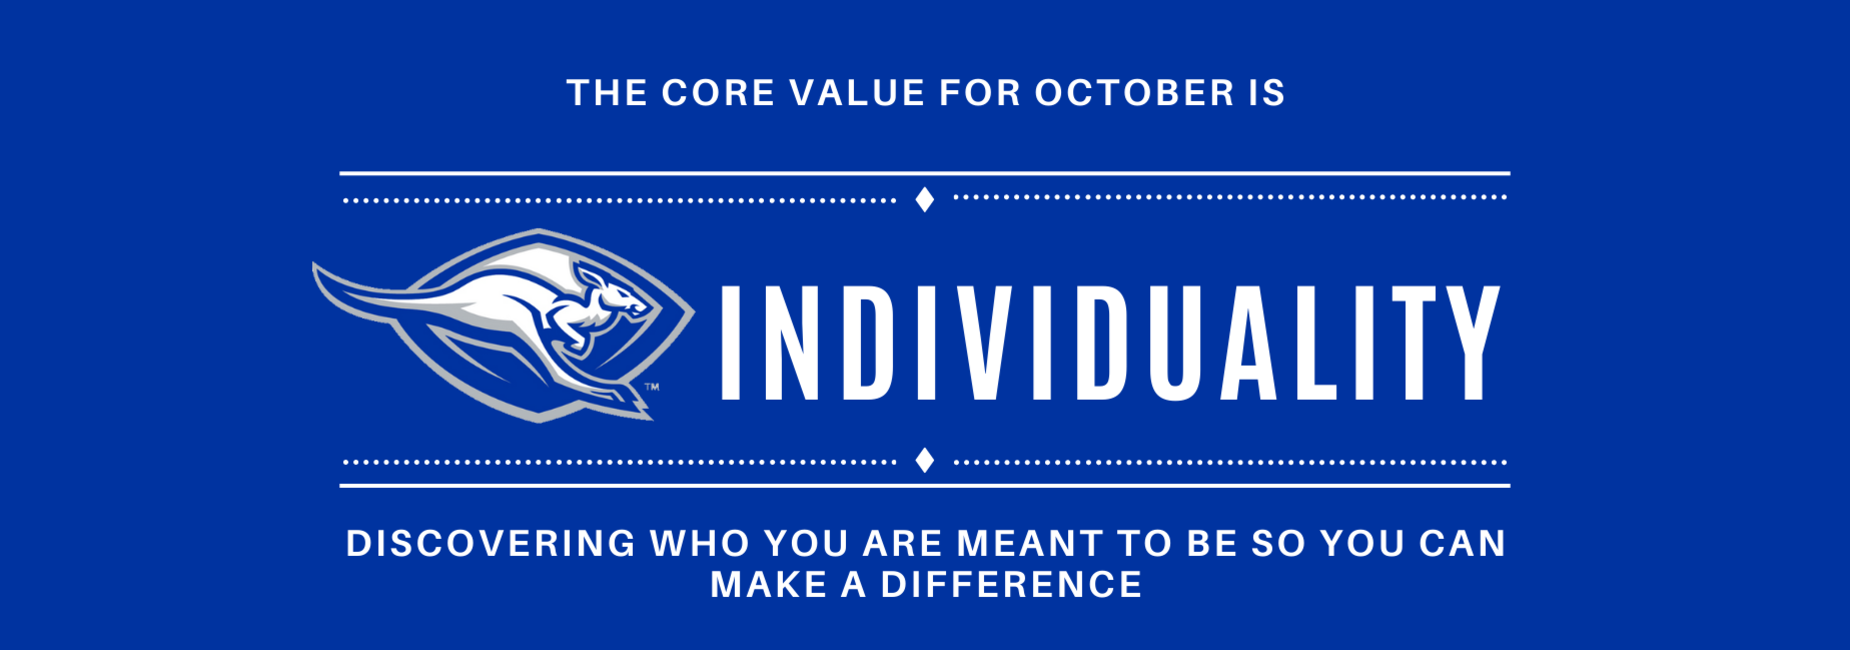 The Core Value for October is Individuality | Discovering who you are meant to be so you can make a difference